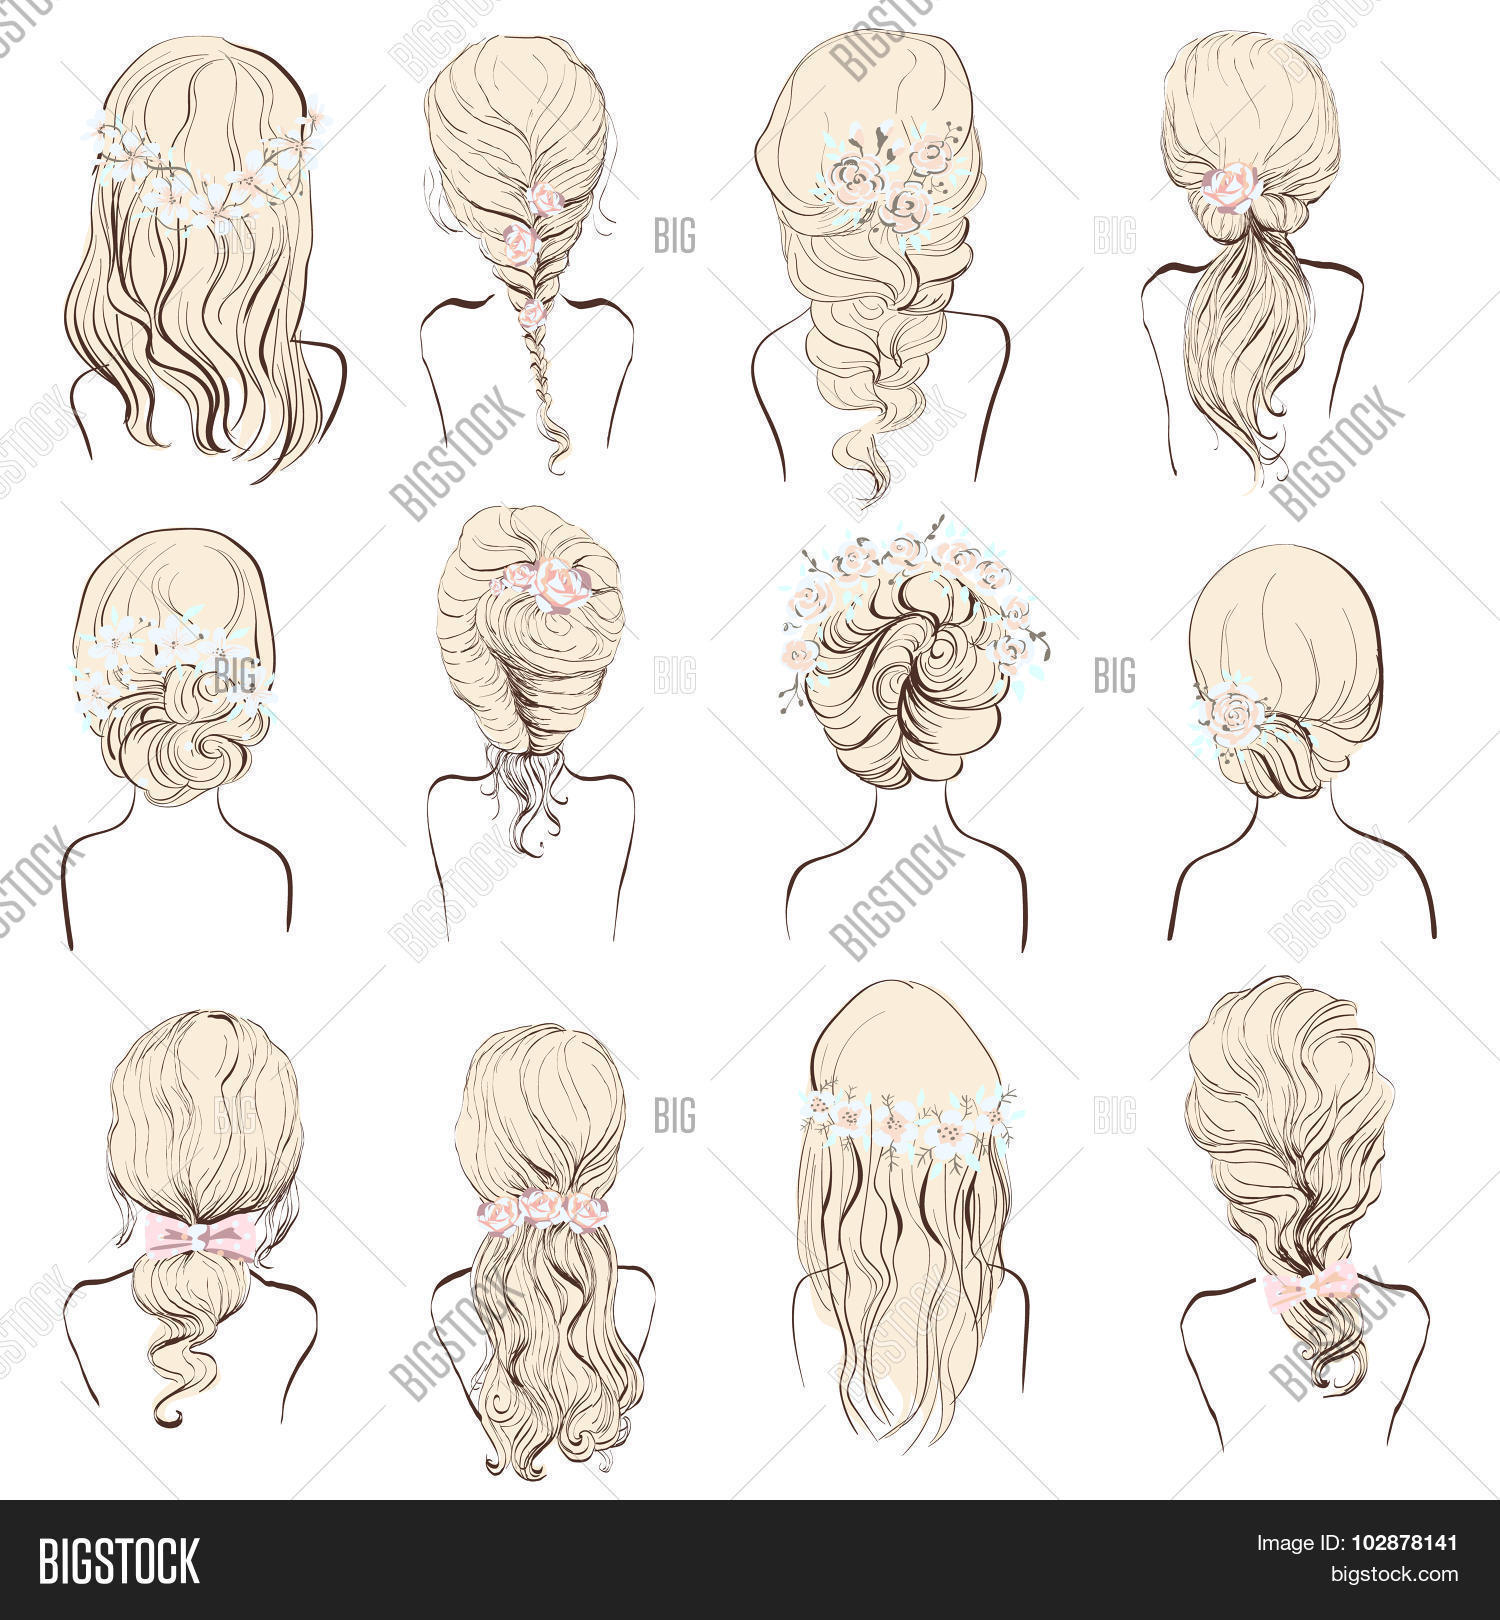 Set of different hairstyles wedding hairstyles hair styles with flowers sketch hairstyle head lady isolated on